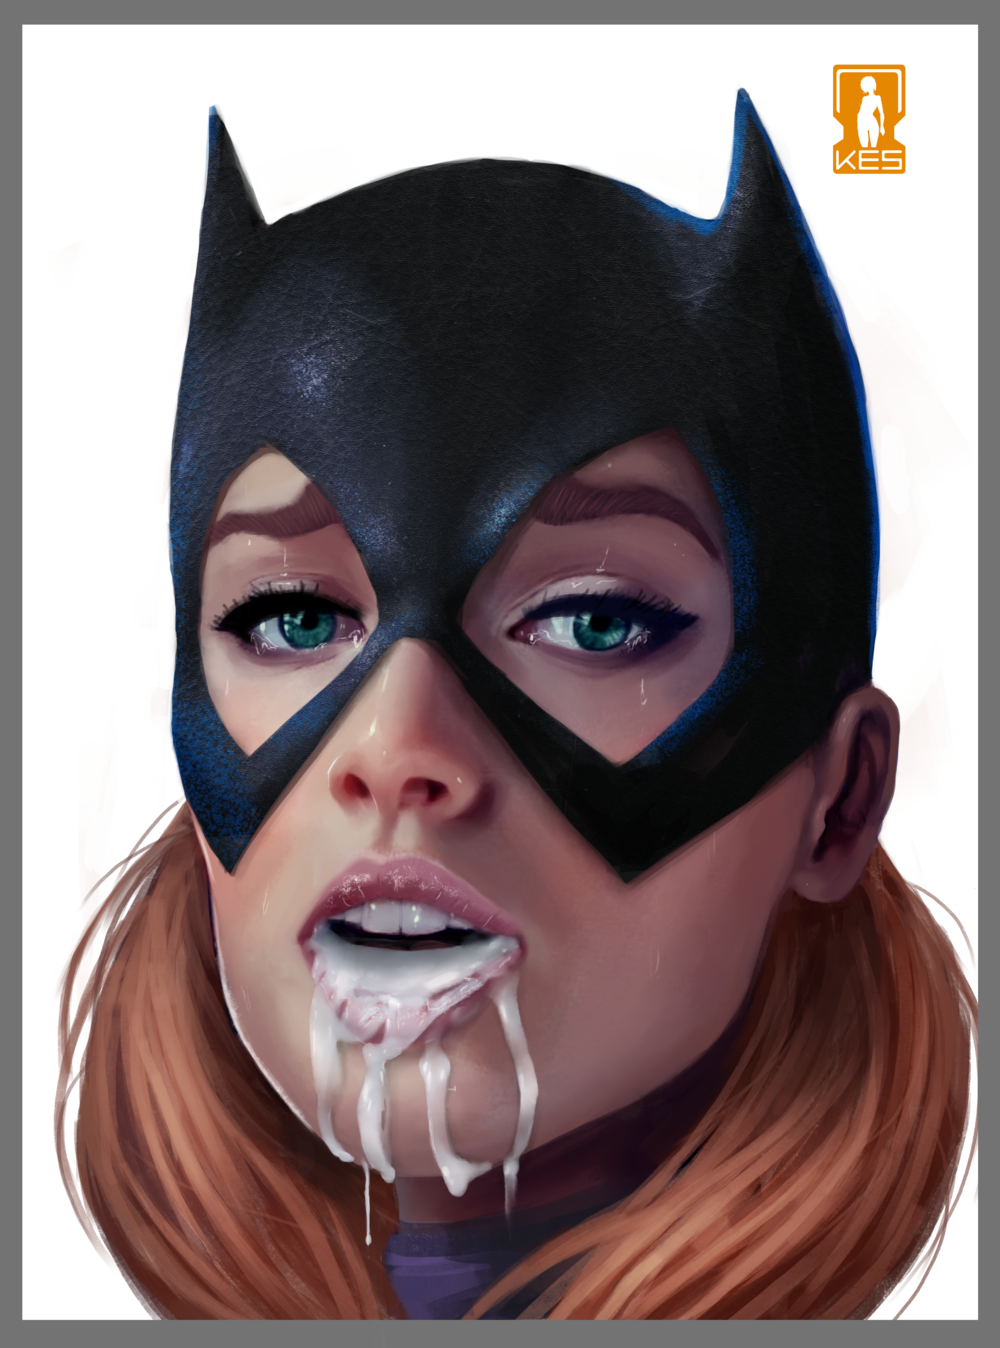 9_24 barbra gordon batgirl_preview_2.png